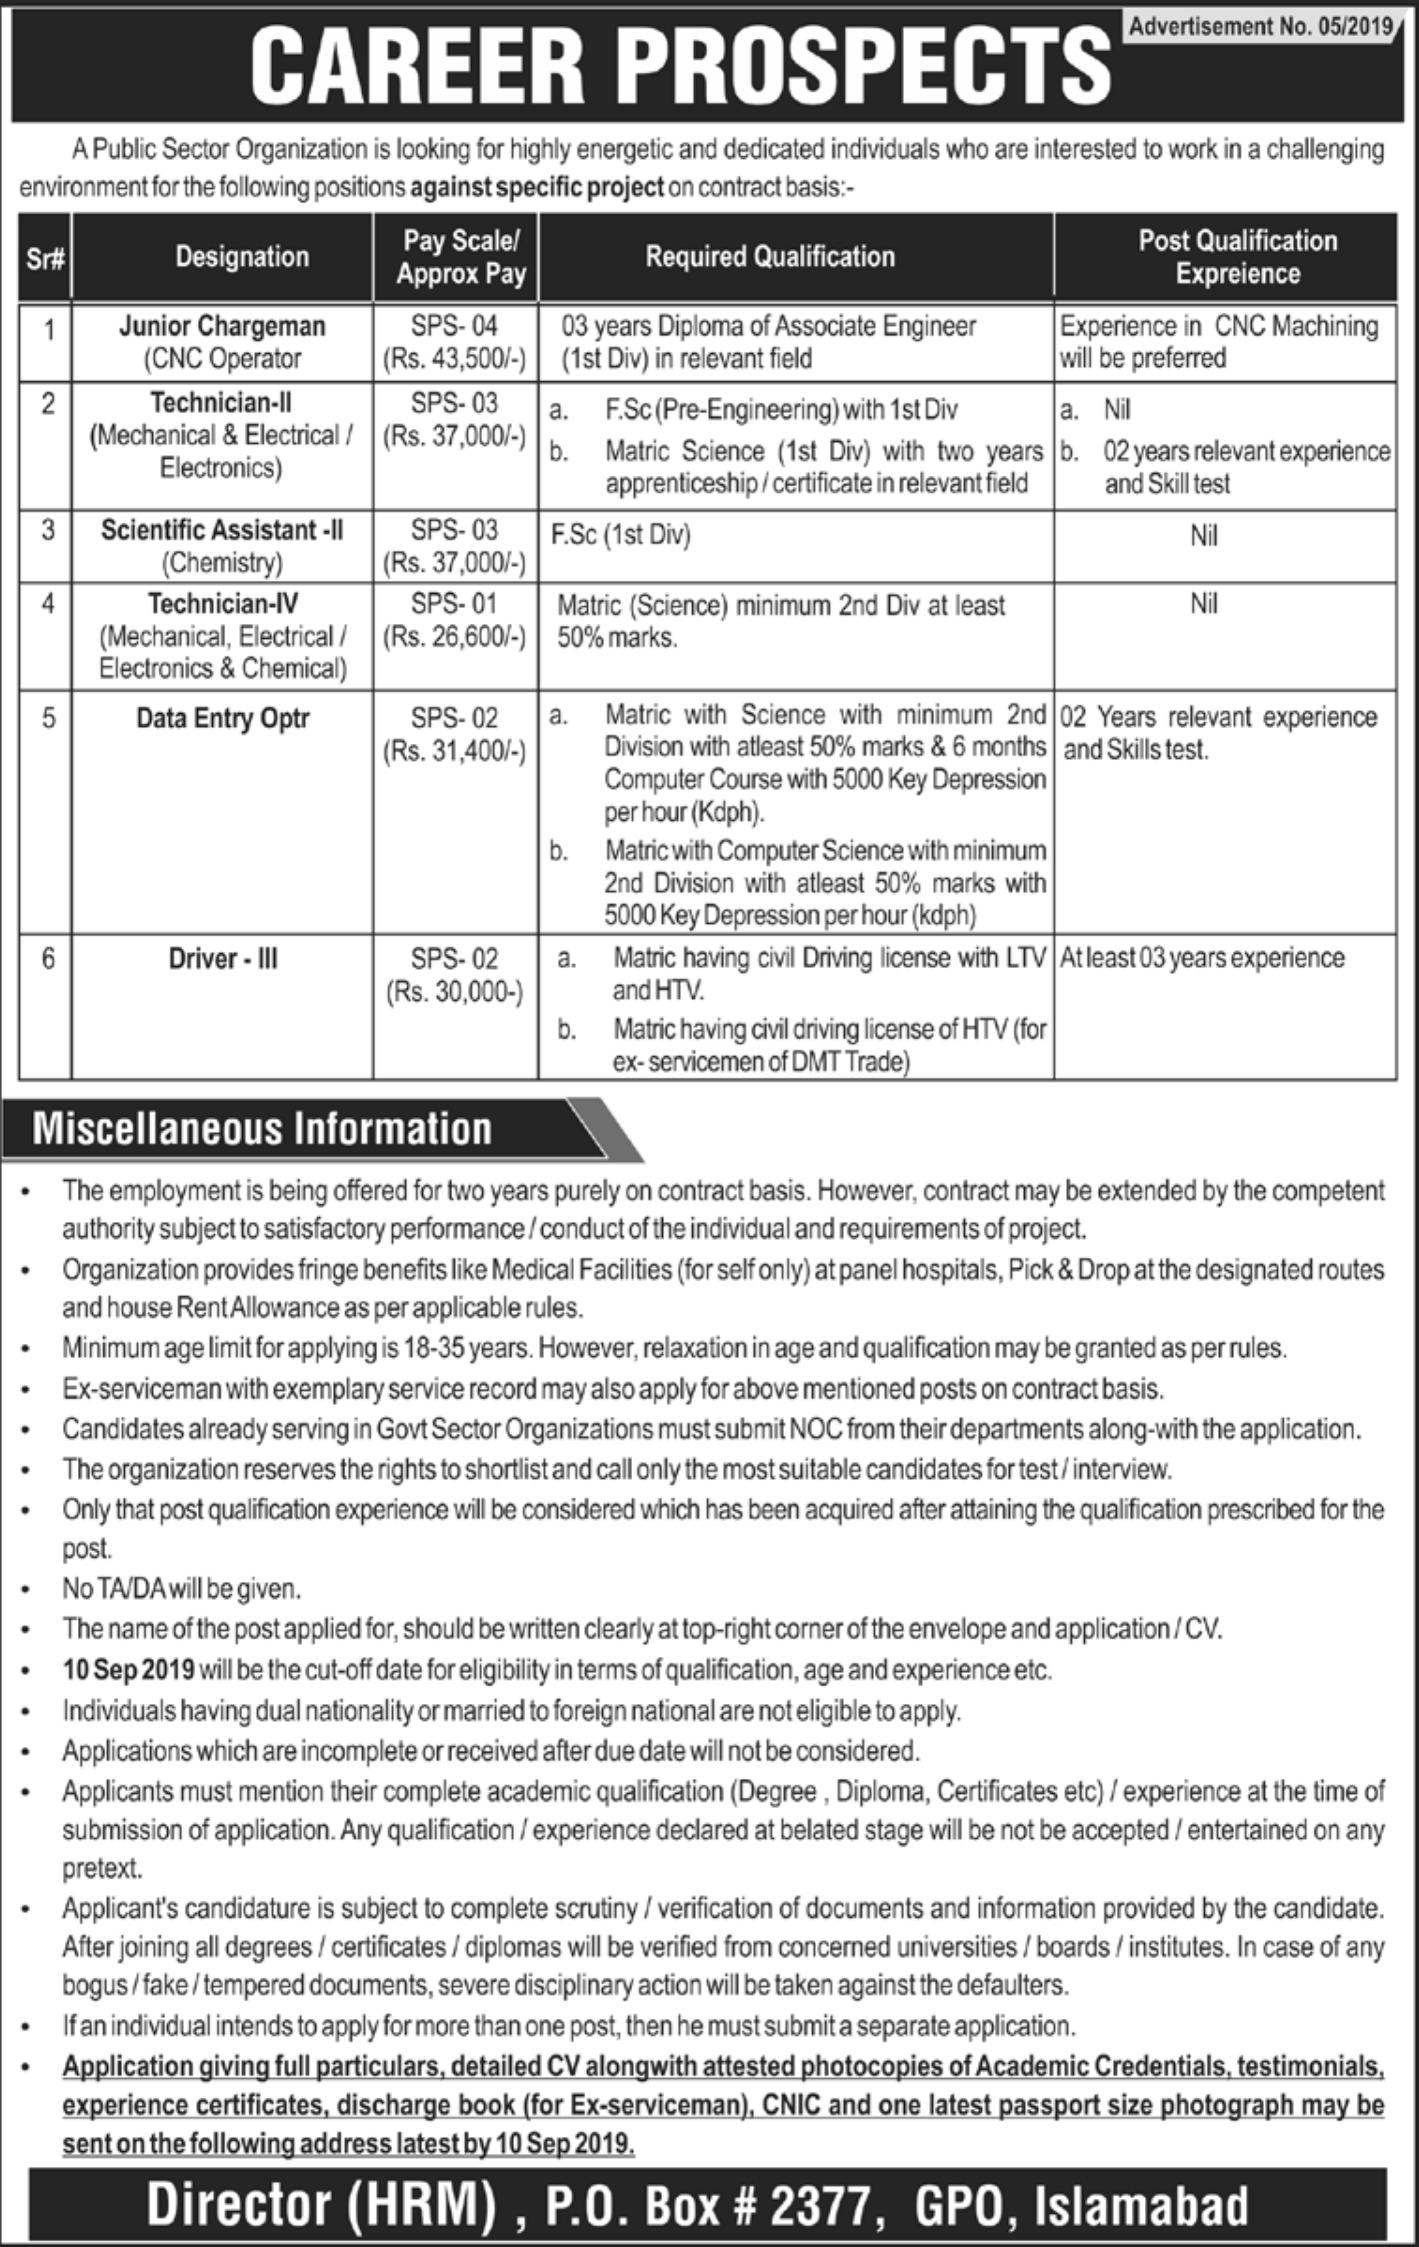 Public Sector Organization Jobs 2019 P.O.Box 2377 Islamabad